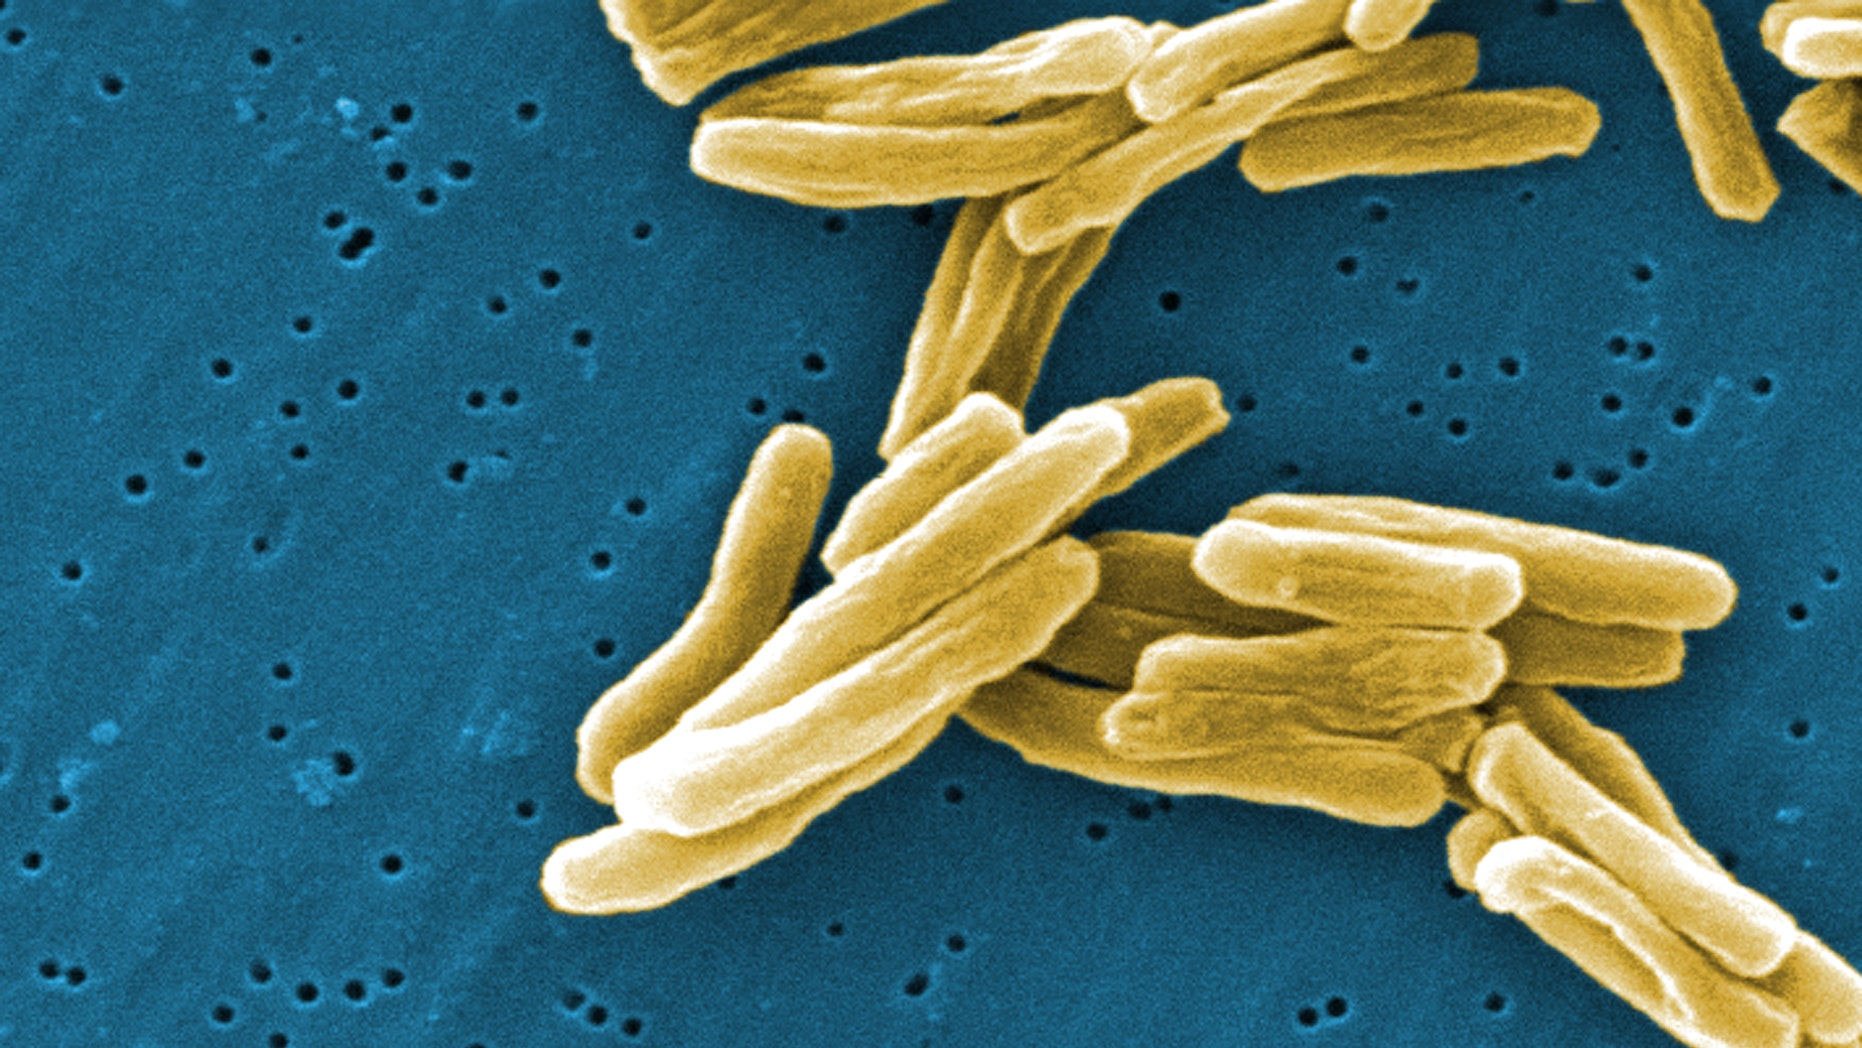 This scanning electron micrograph (SEM) depicts some of the ultrastructural details seen in the cell wall configuration of a number of Gram-positive Mycobacterium tuberculosis bacteria.